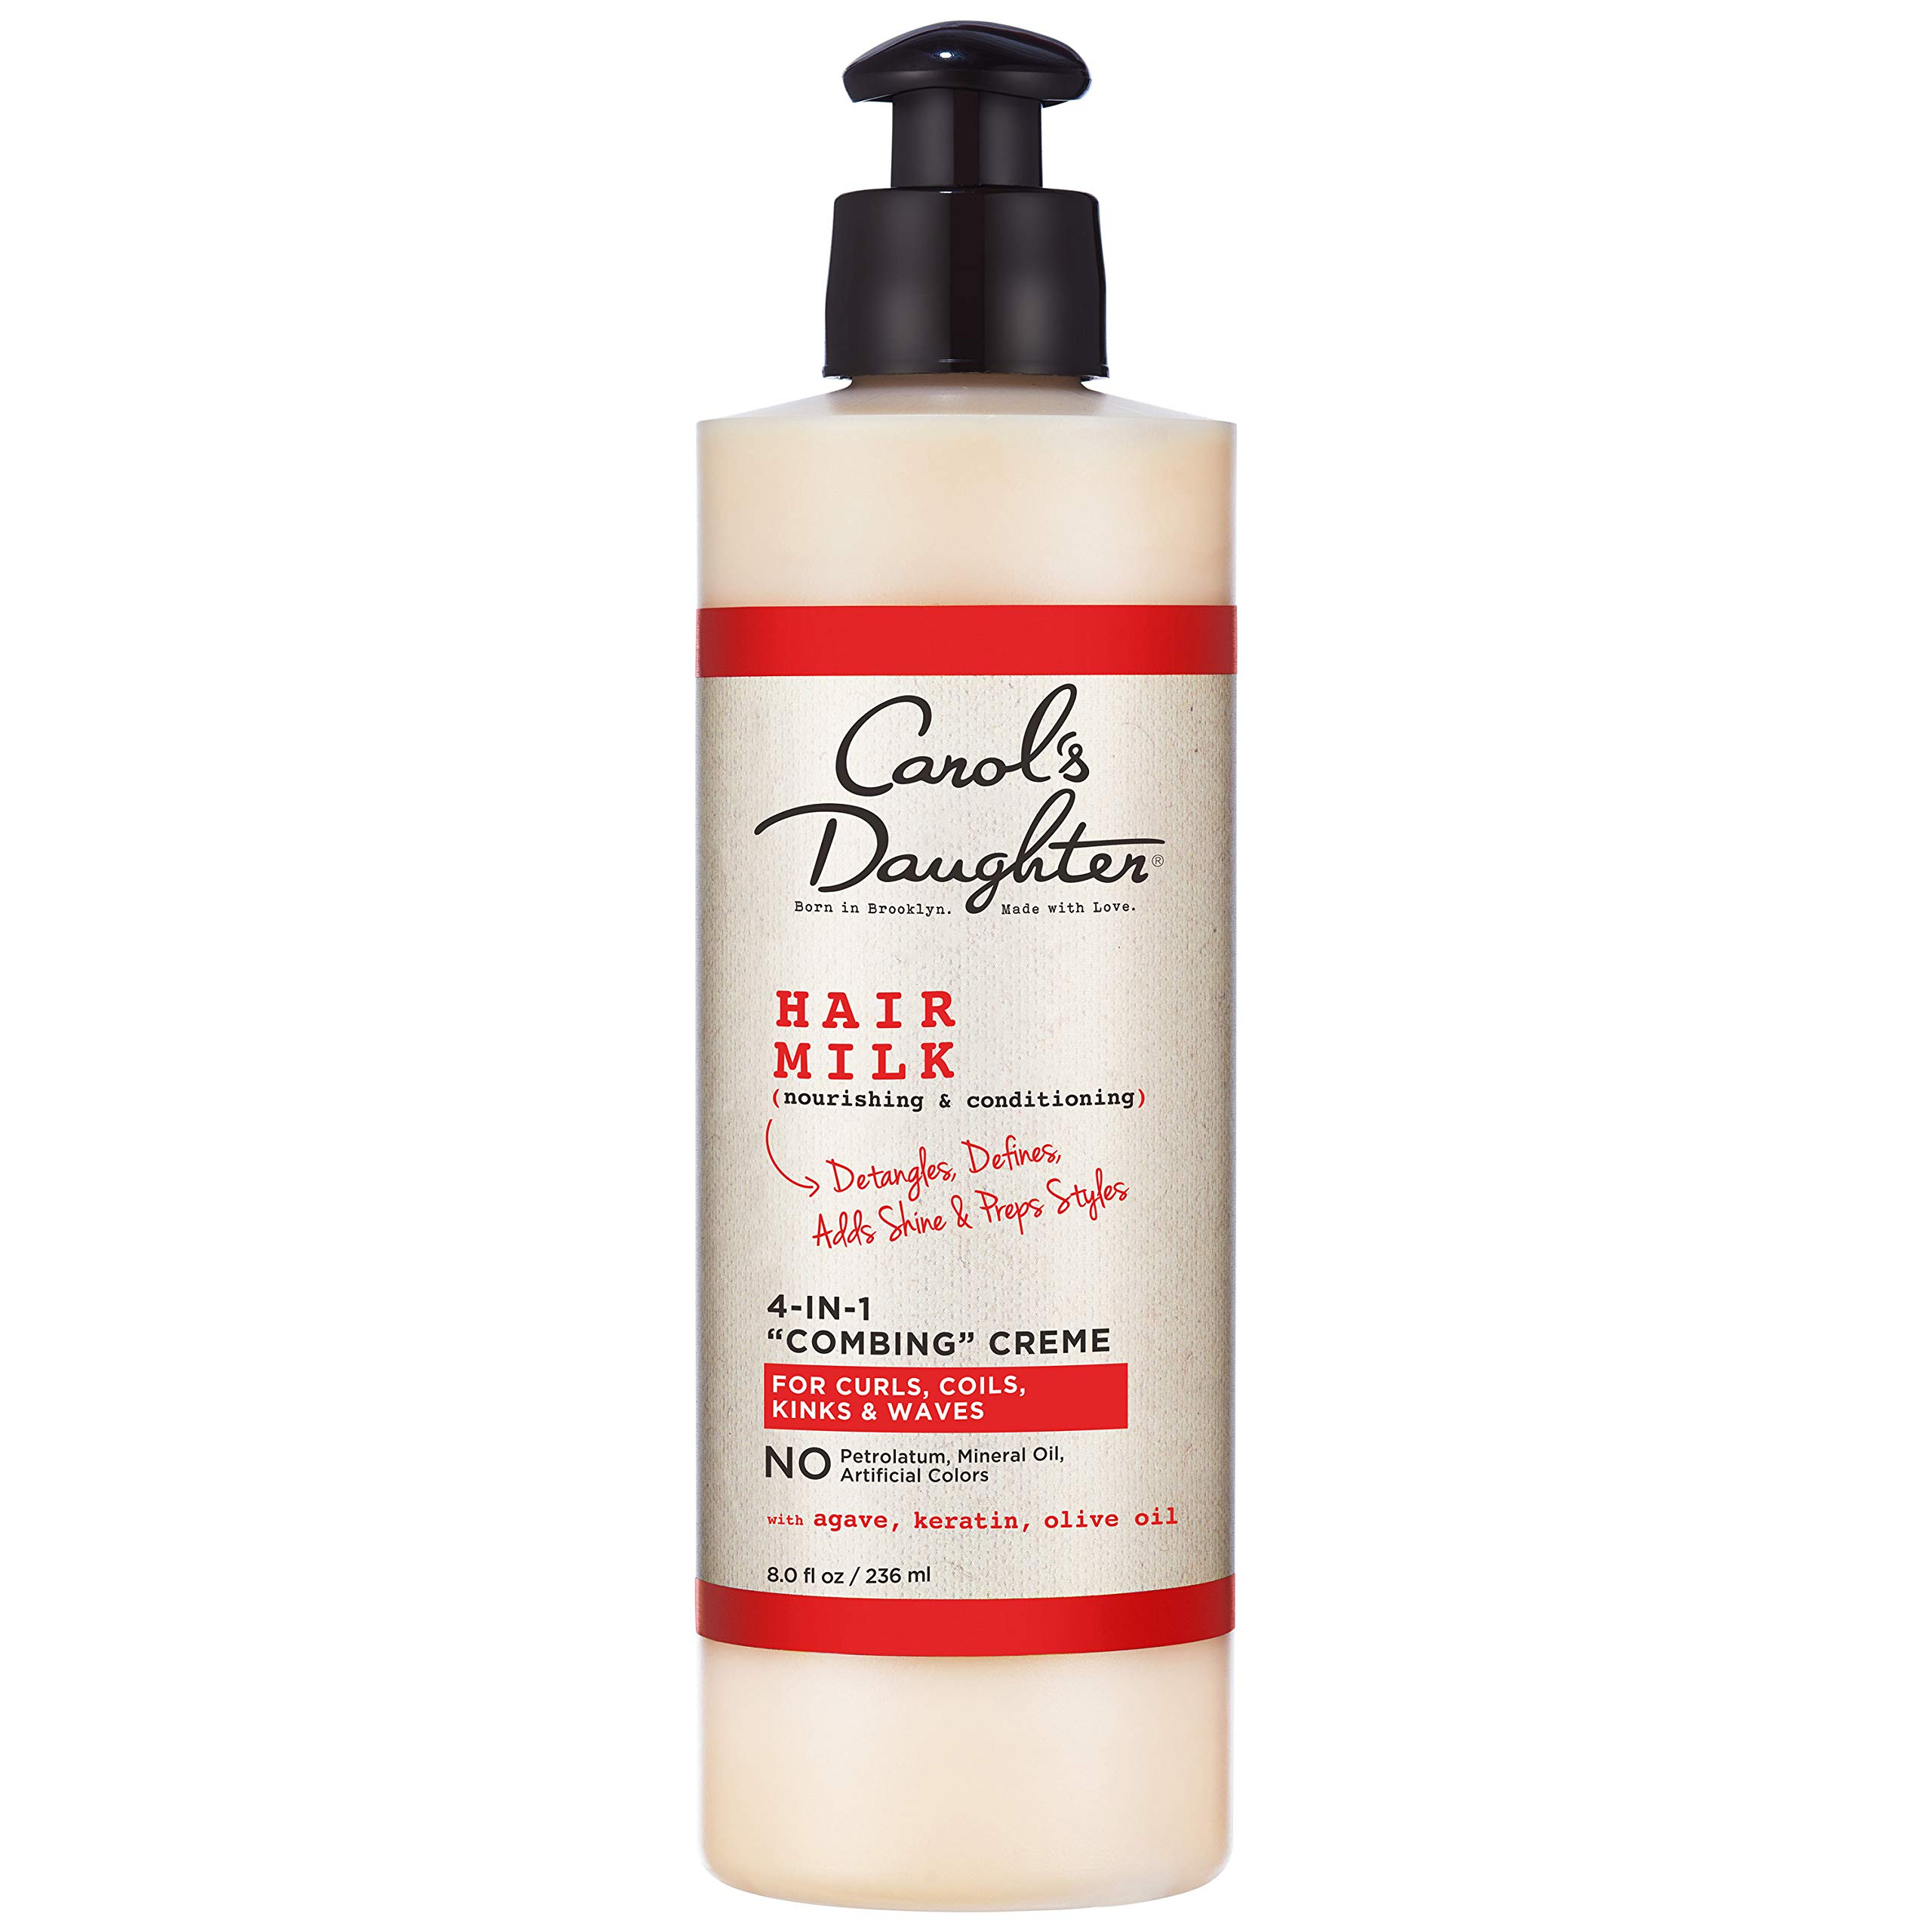 Carol's Daughter Hair Milk 4 in 1 Combing Creme for Curls, Coils and Waves, with Agave and Olive Oil, Hair Detangler, Curl Cream, 8 fl oz